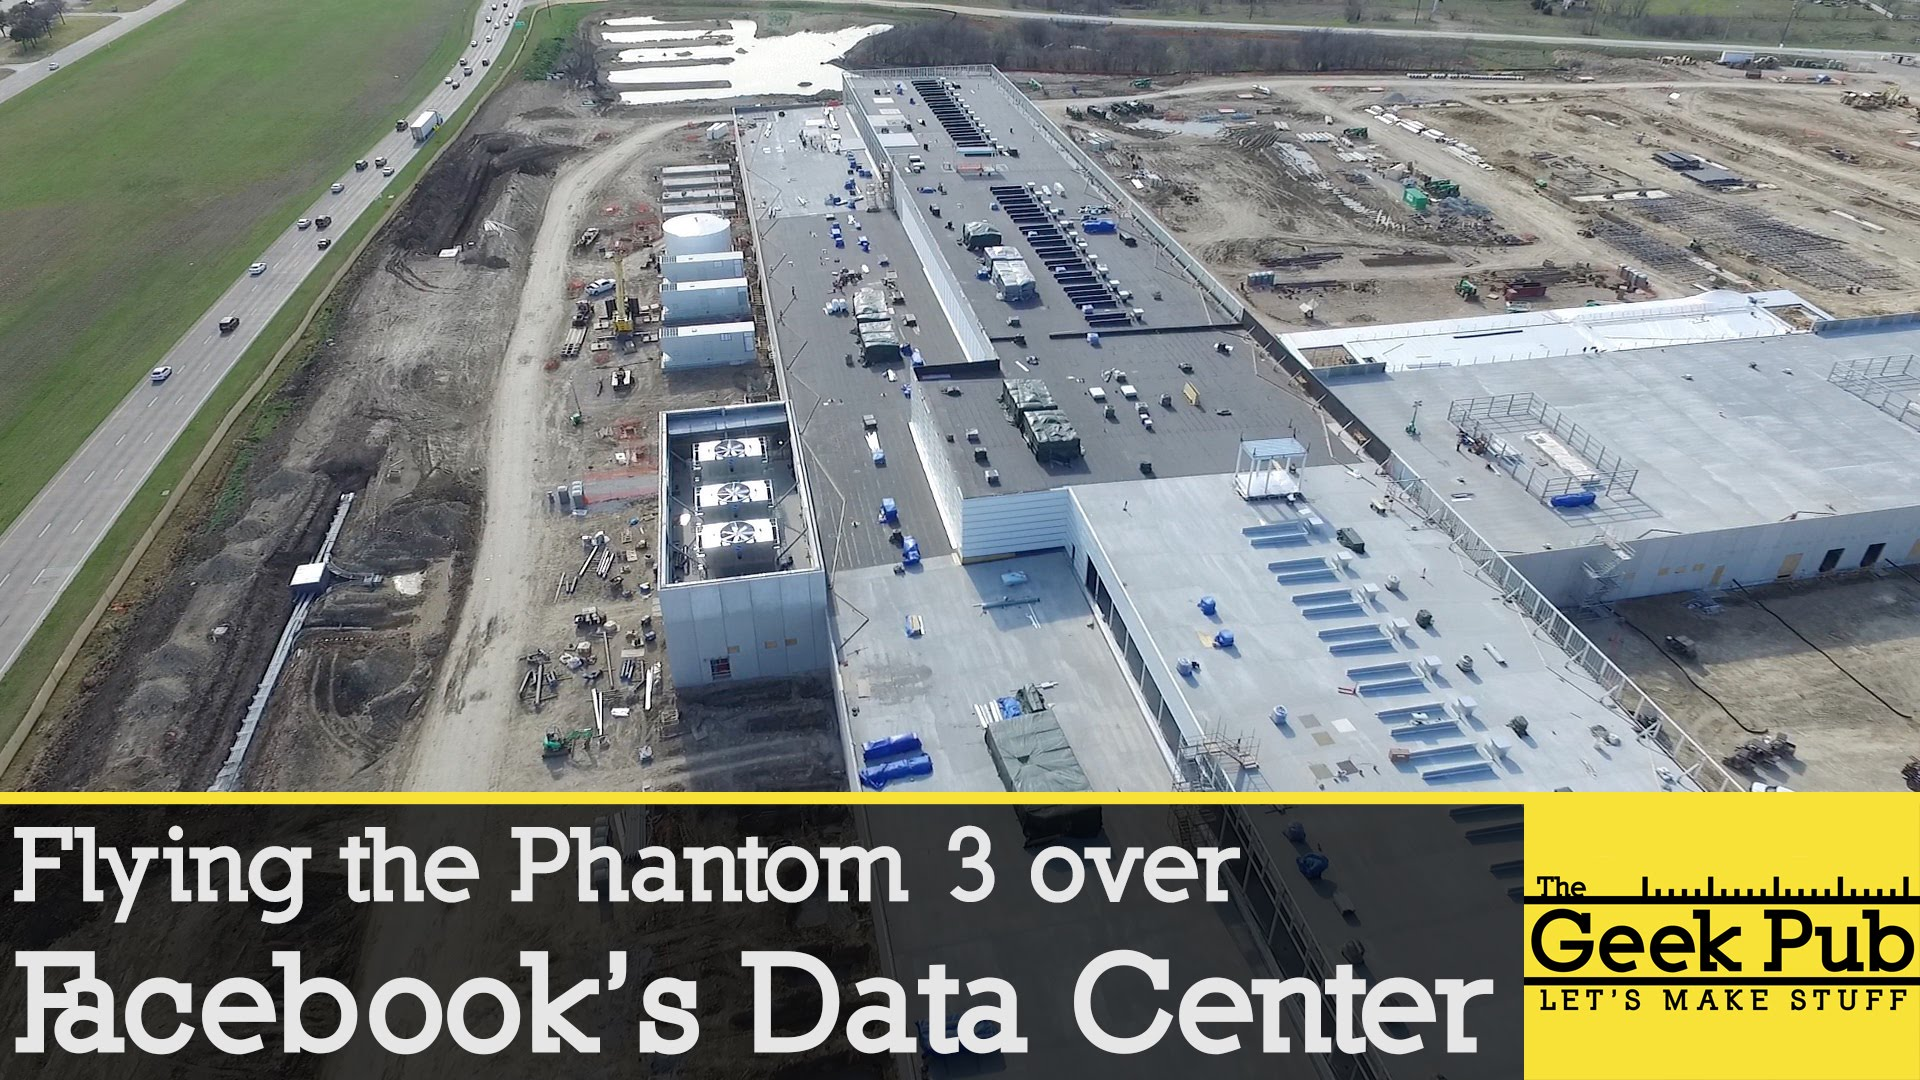 Facebook data center hacking.jpg